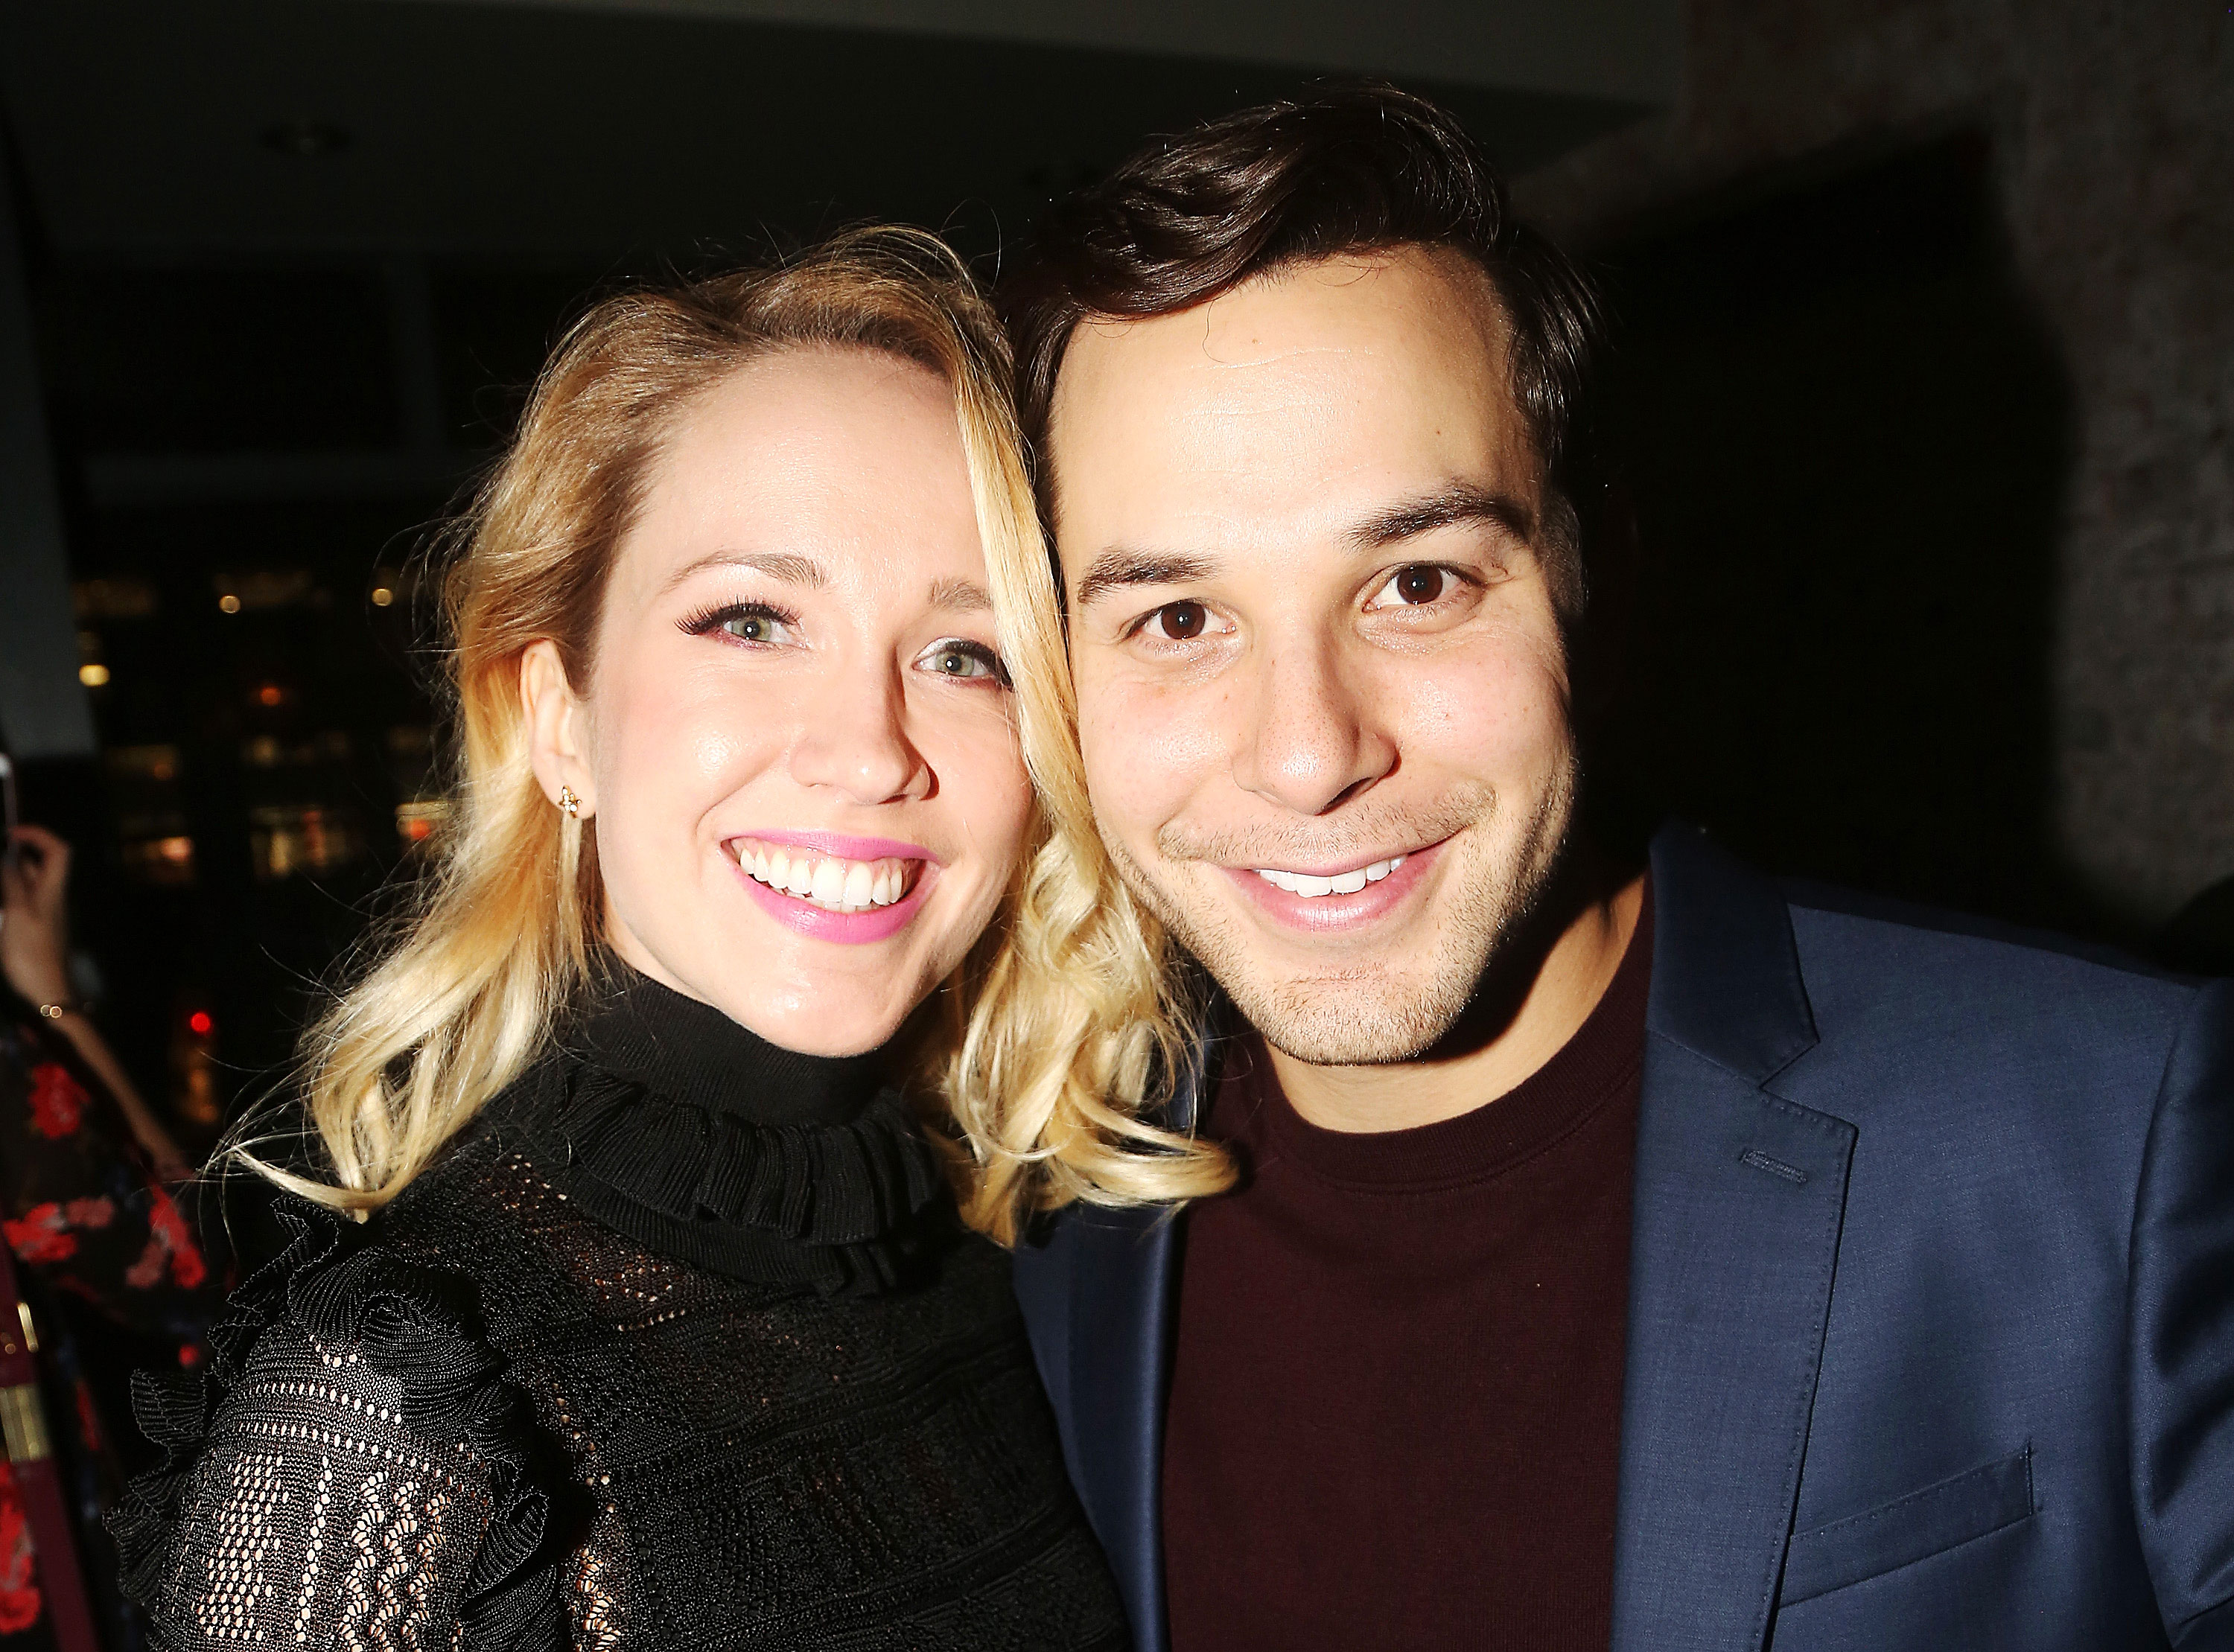 Anna Camp and Skylar Astin List Home Amid Split - Anna Camp and Skylar Astin pose at the opening night afterparty for 'What We're Up Against' in New York City on November 8, 2017.